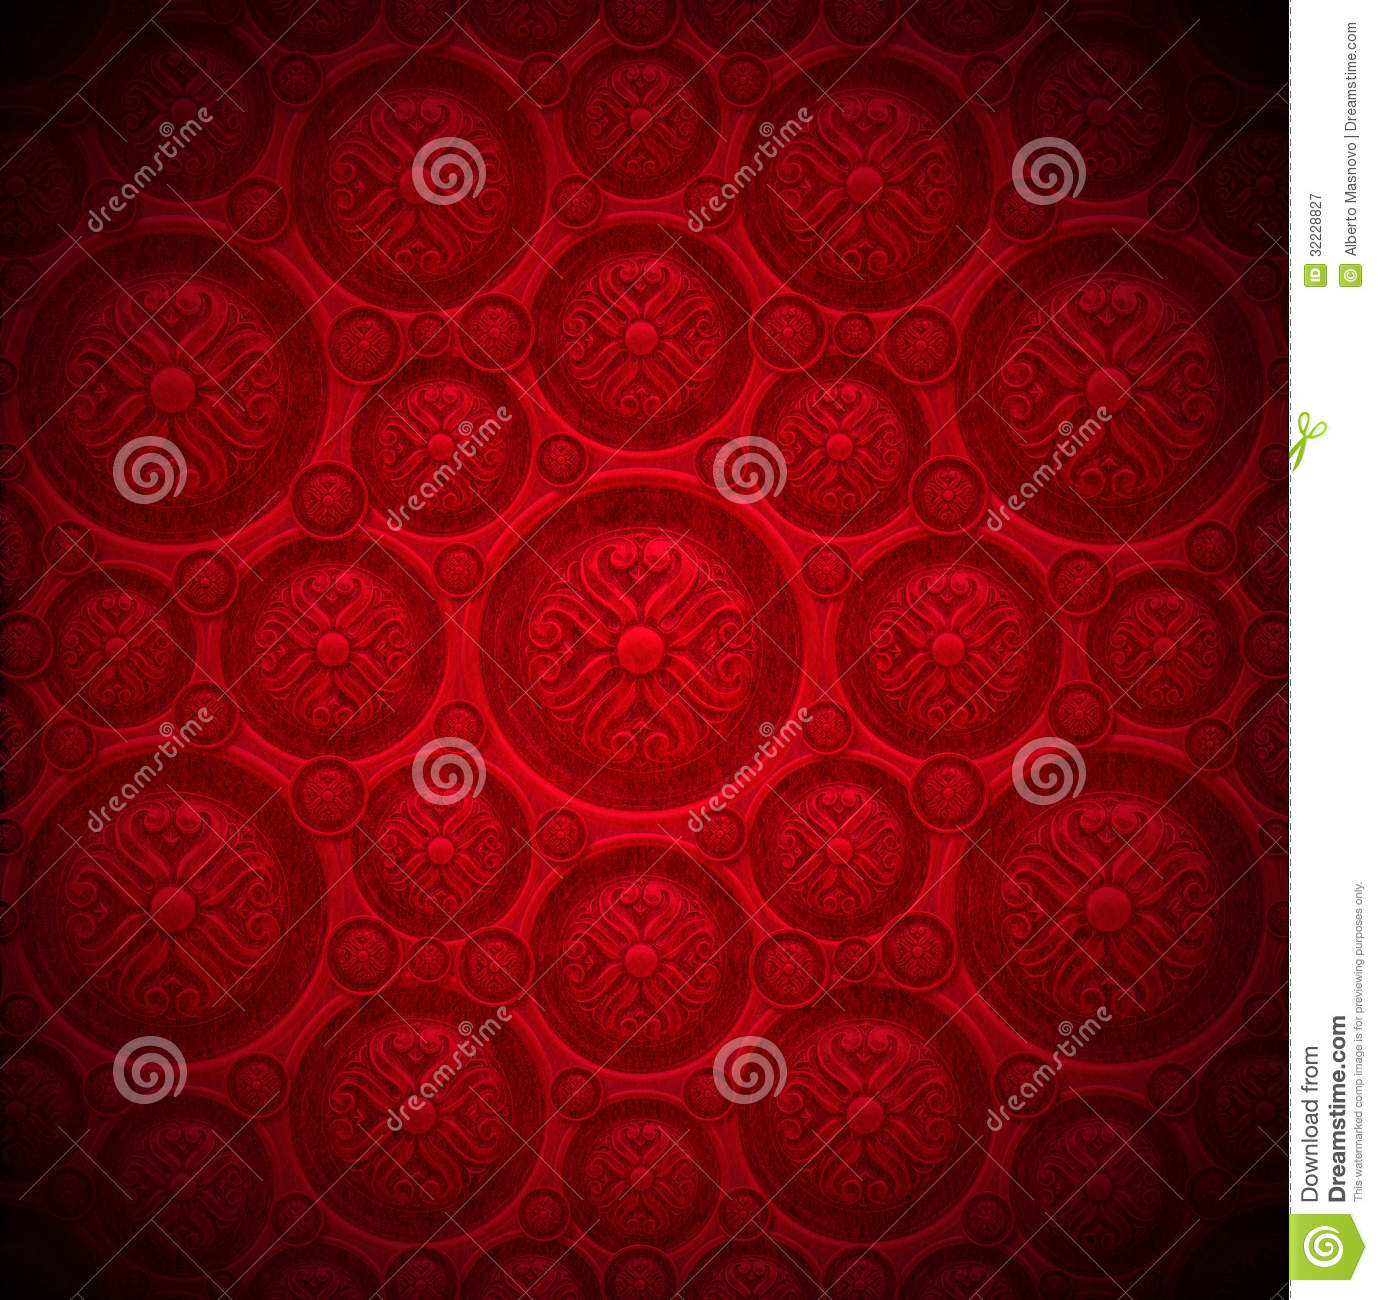 Red Velvet Background With Classic Ornament Royalty Free Stock ...